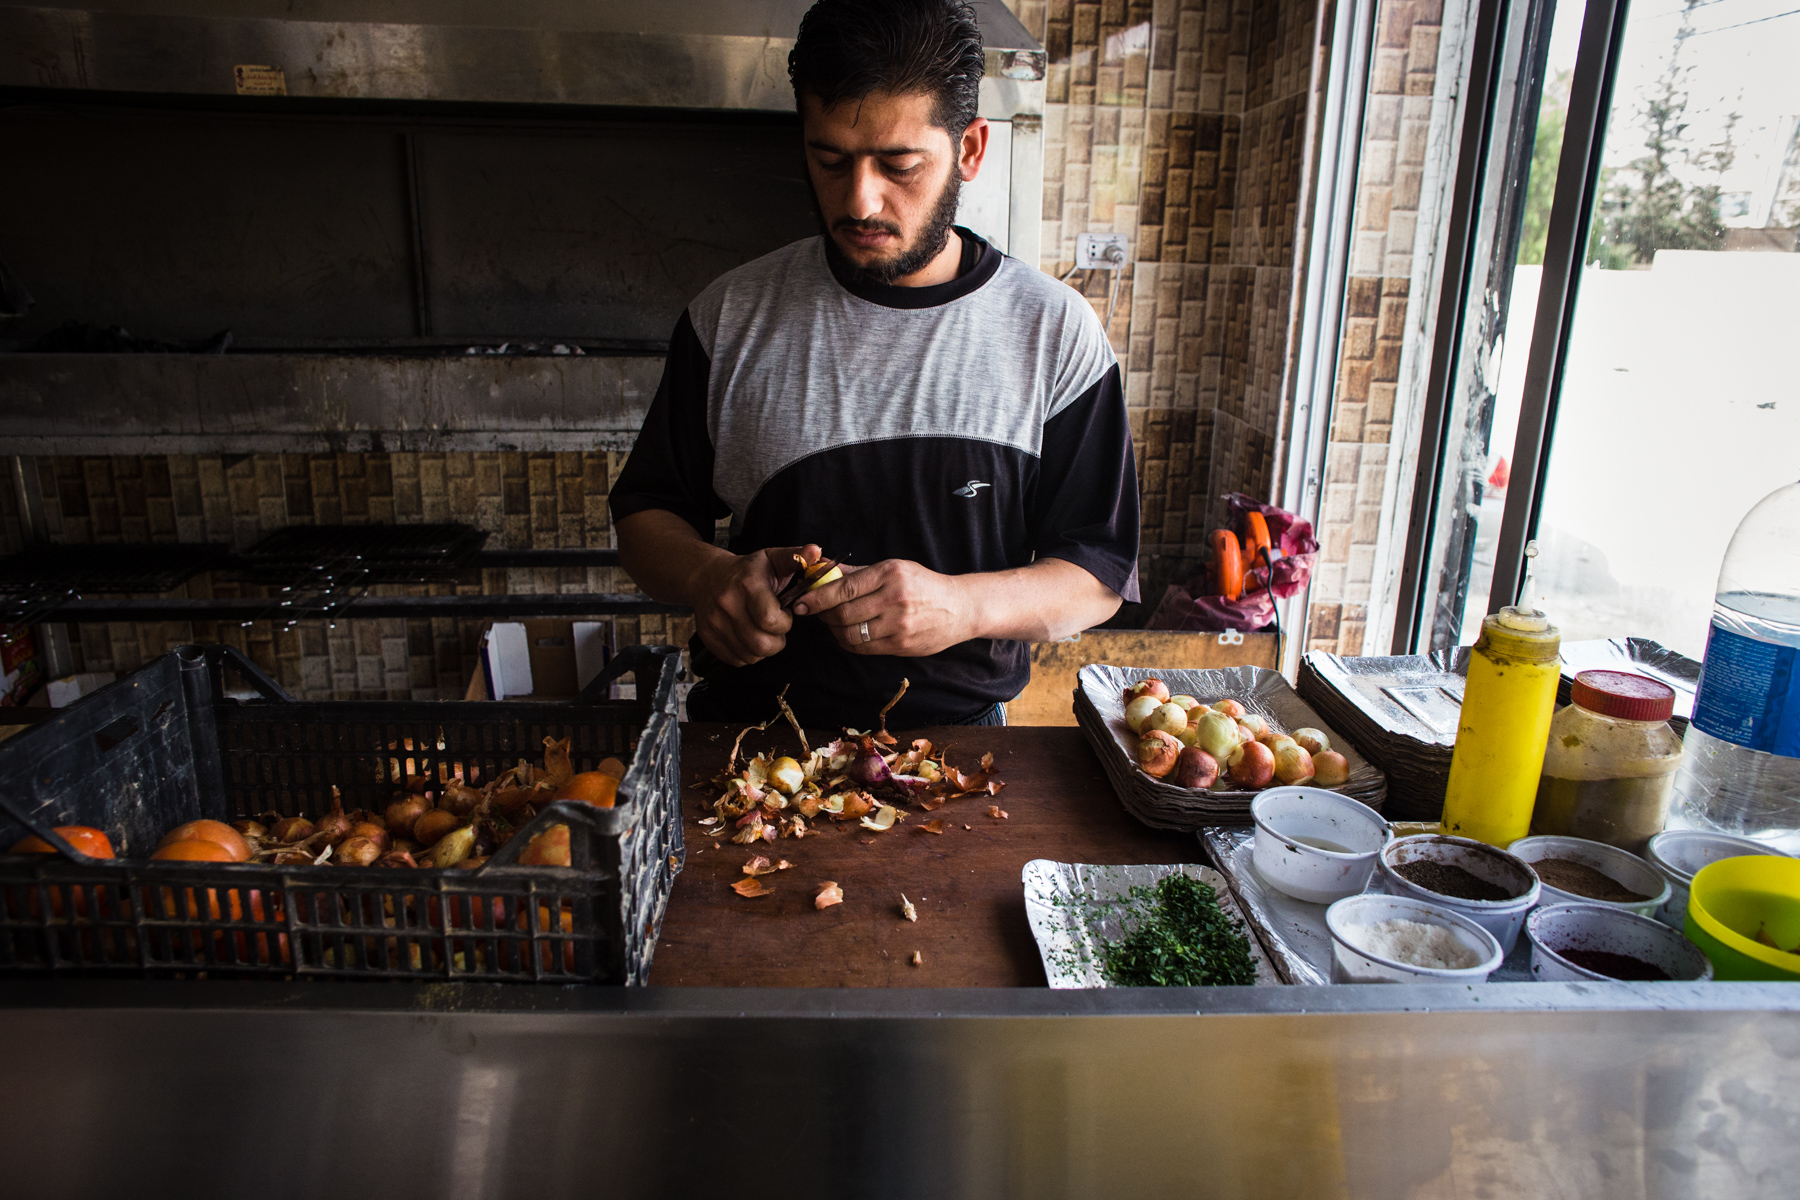 Abu Hamad (not pictured), a Jordanian citizen, owns a butcher shop in Mafraq city and employs four Syrian refugees. He paid for all of their work permits so that they could work legally in Jordan.